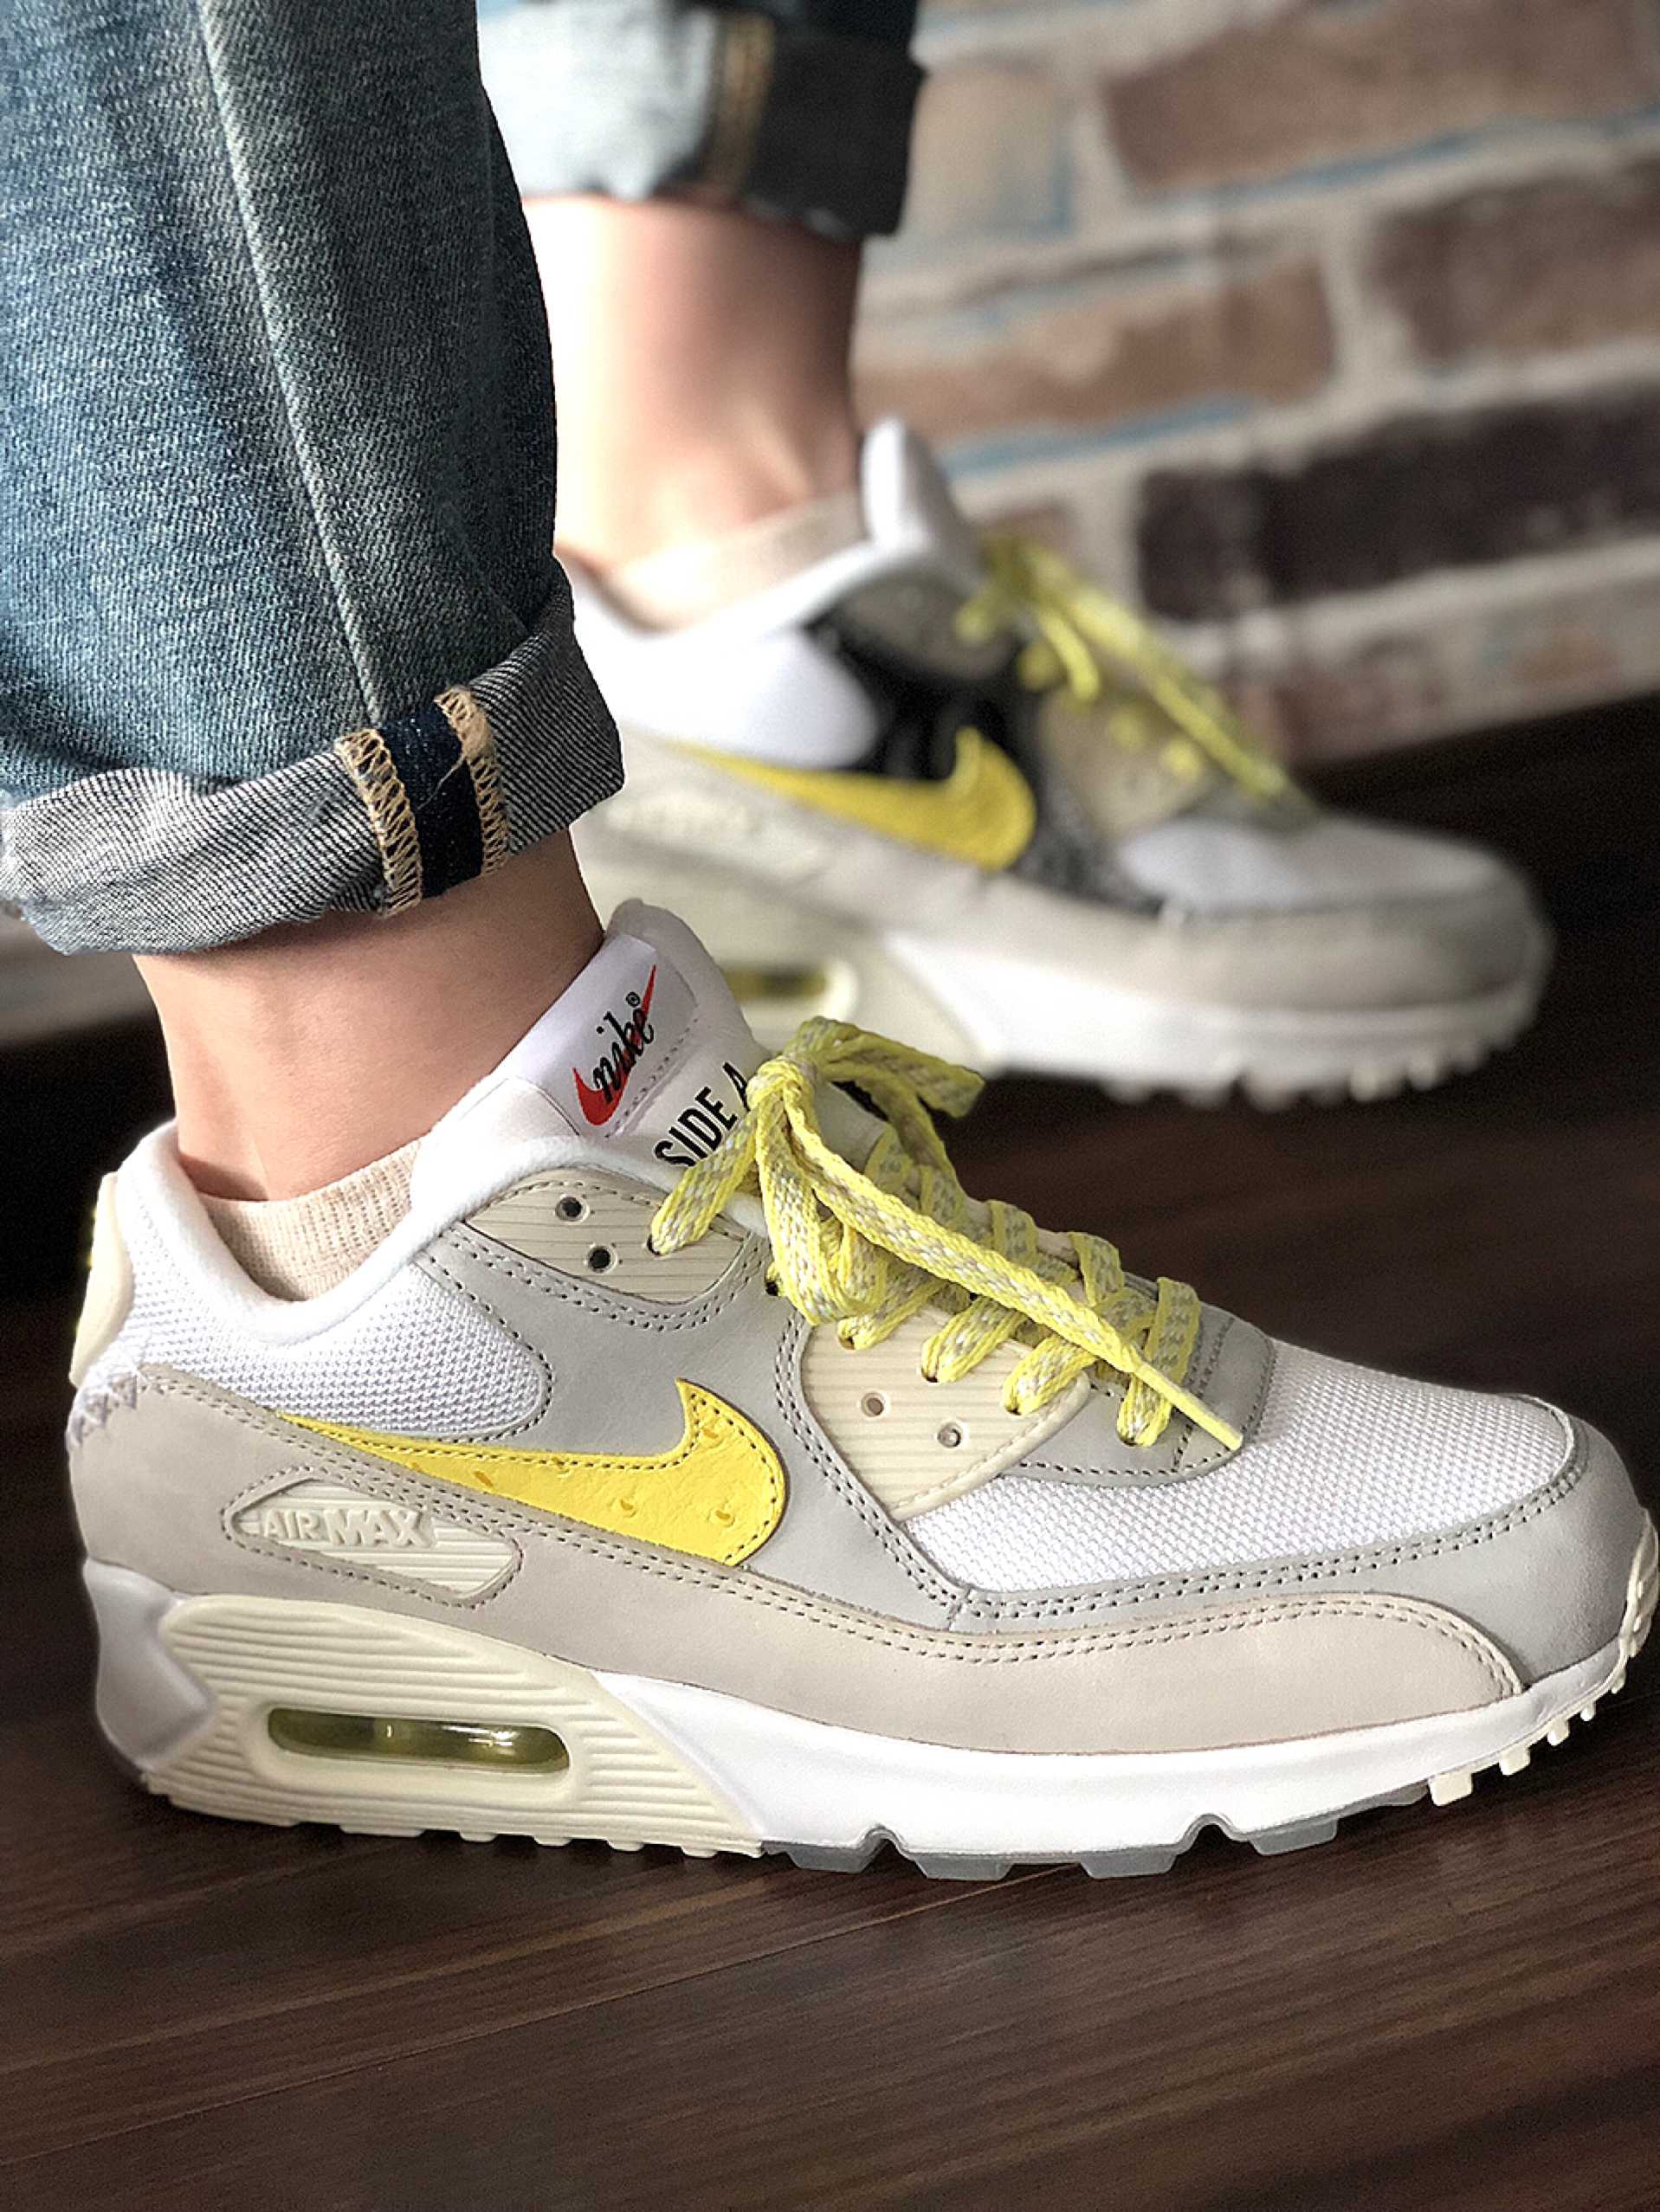 NIKE AIR MAX 90 MOON LANDING 2COLORS  side A